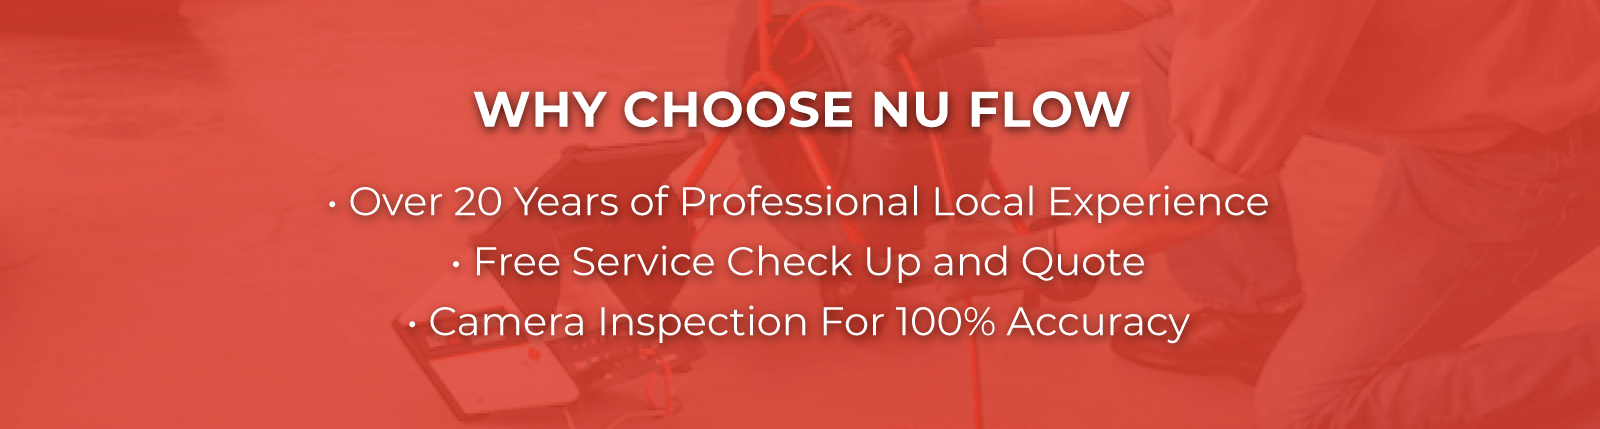 nu flow oklahoma sewer repair 1 Drain Cleaning